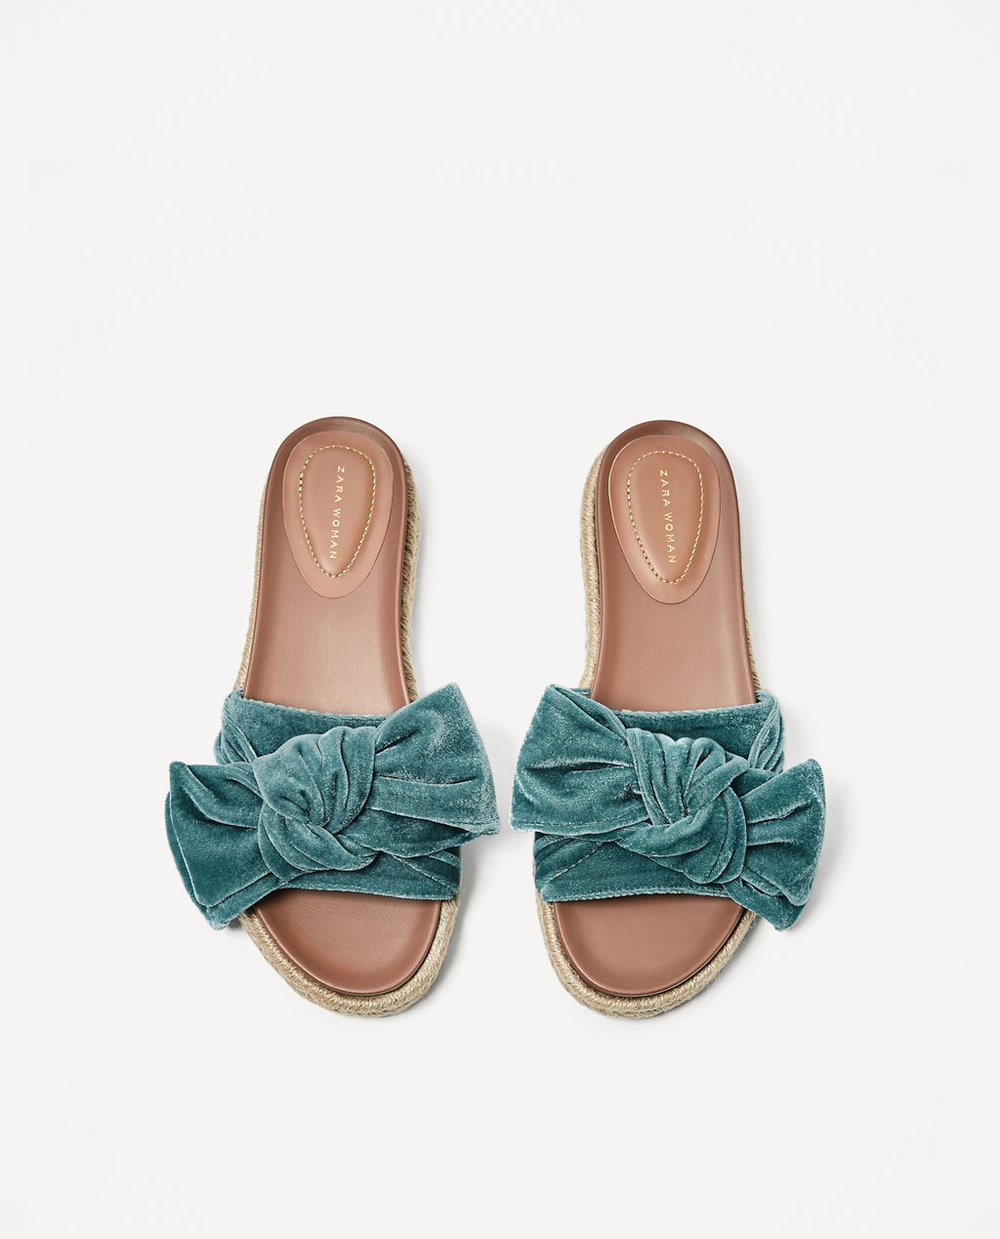 Velvet Bow Slides / Zara / $60  Zara is not playing around this season - SEA GREEN and VELVET!